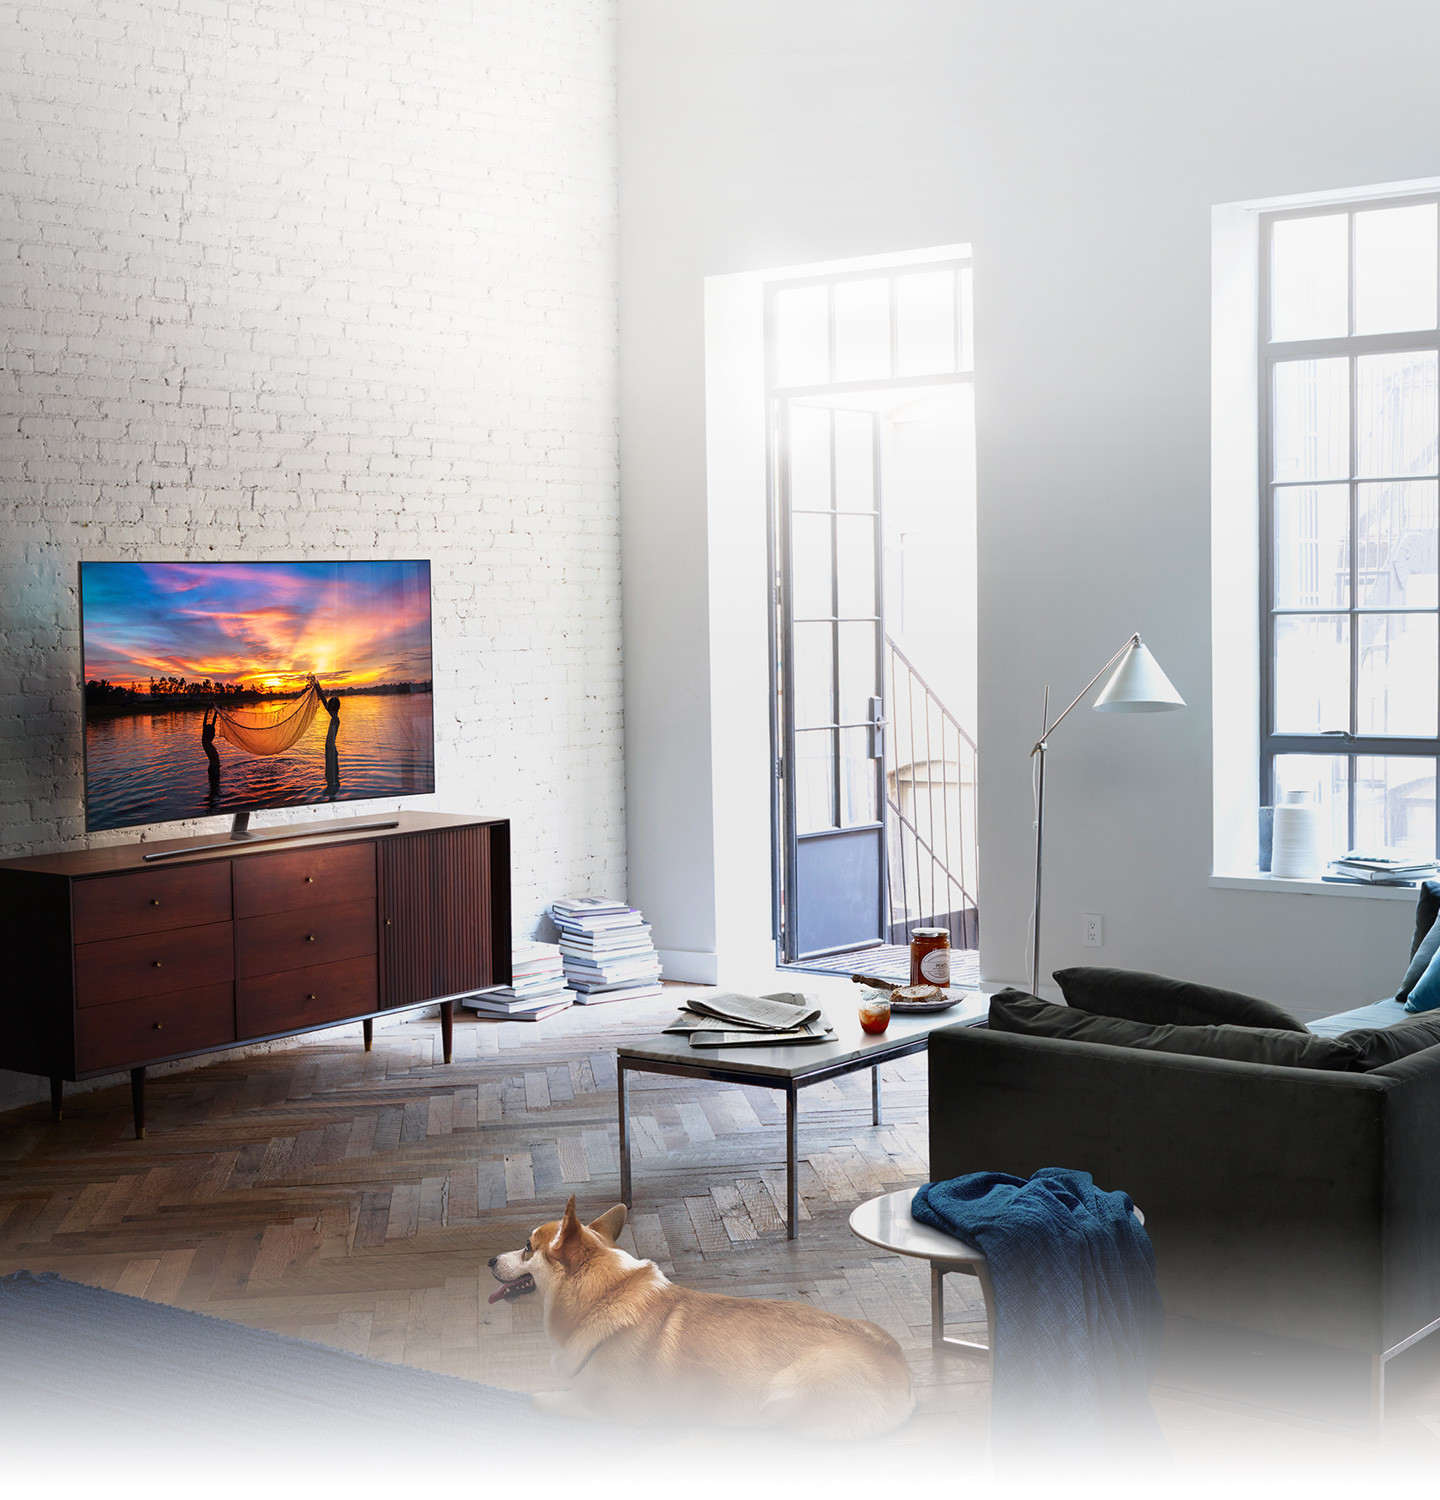 QLED TV has been set in the living room where the morning sun shines brightly and on its display shows children fishing with their net in the seashore glowing with the setting sun..